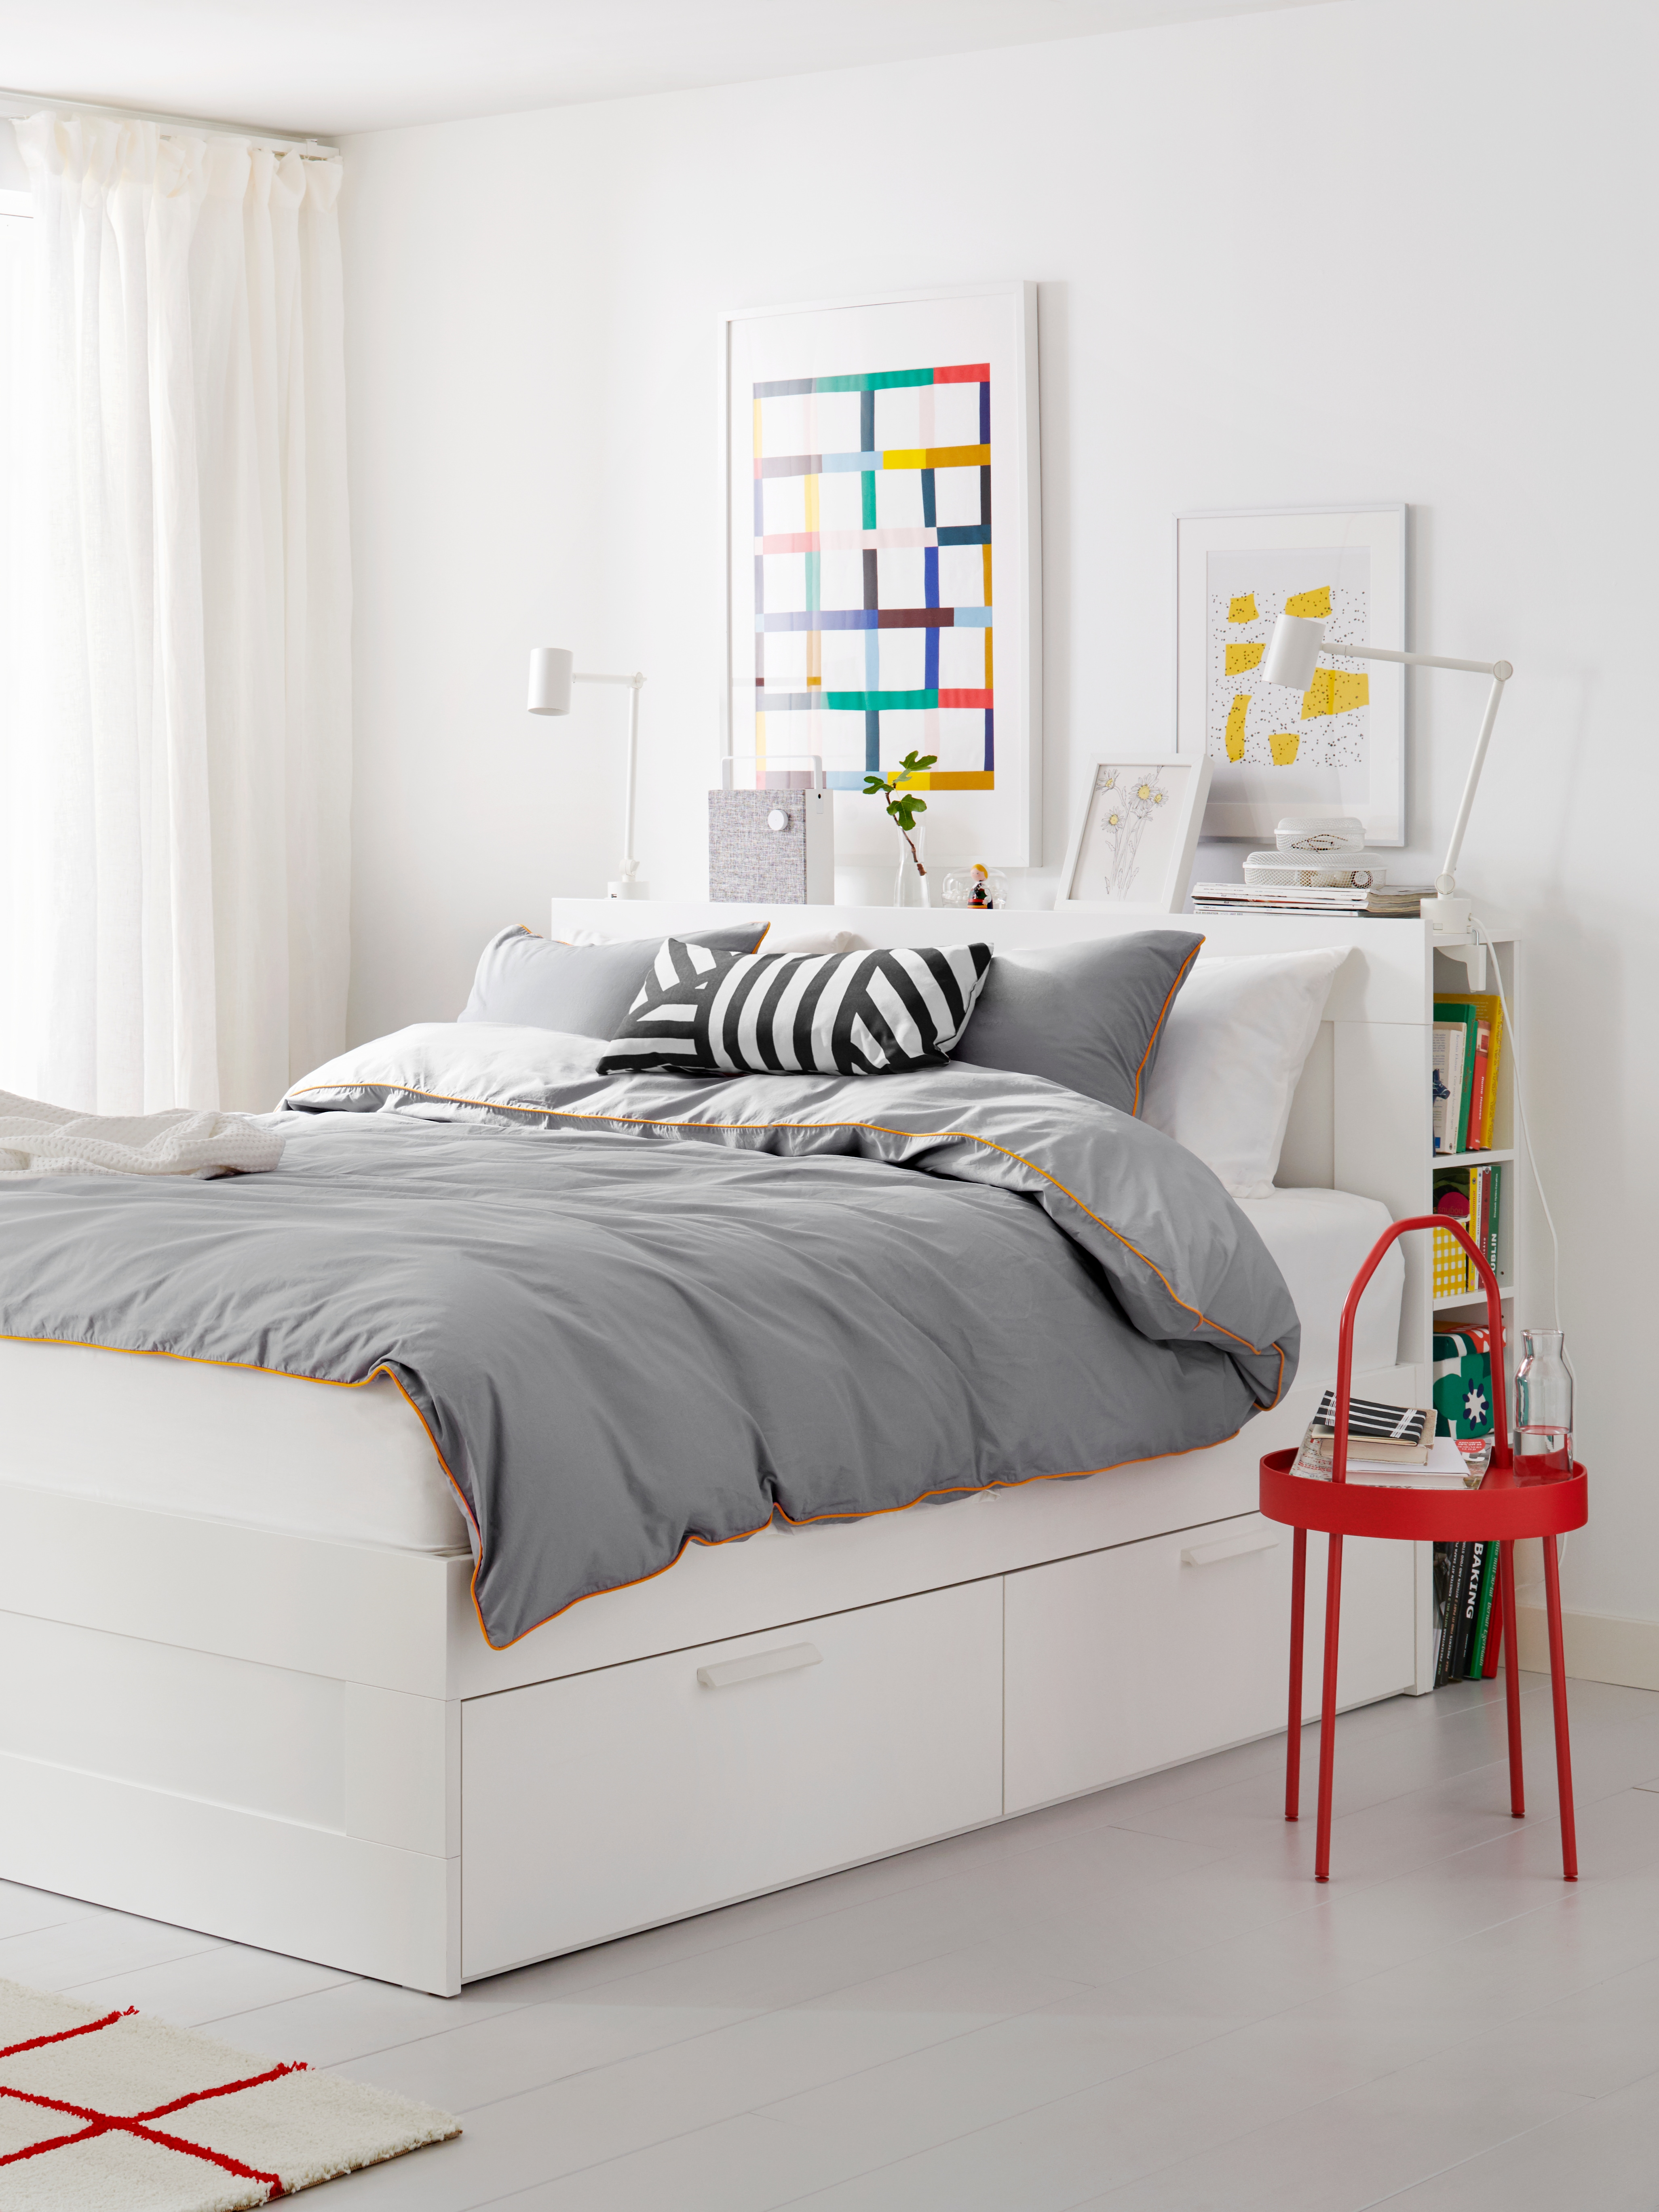 BRIMNES bed frame with gray/yellow bedding, a Bluetooth speaker on the shelf and a red bedside table in a bright bedroom.